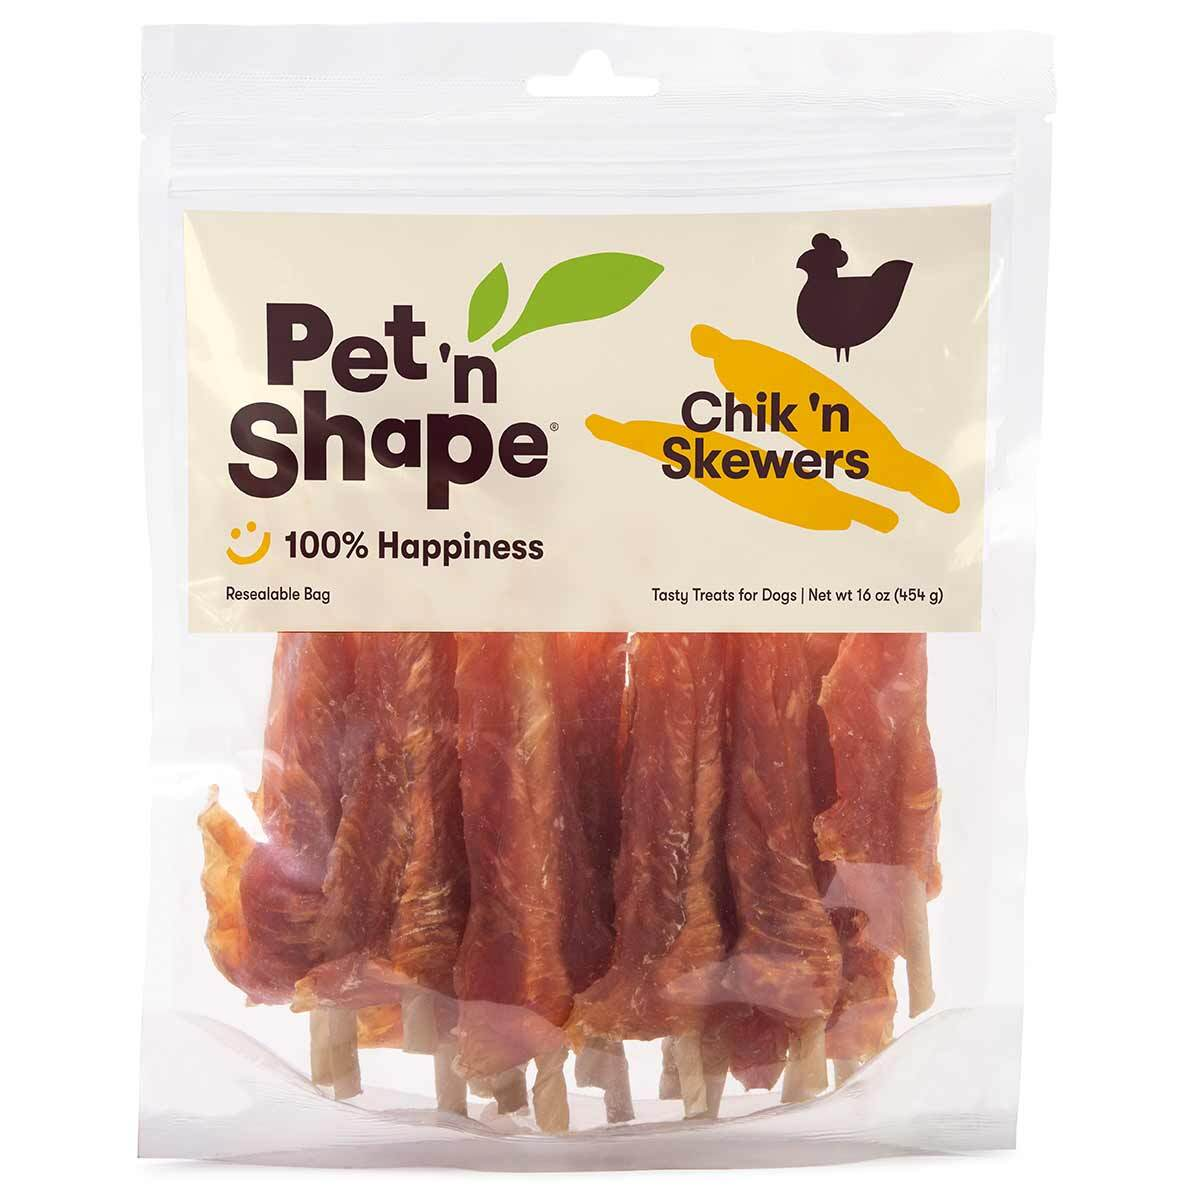 16 oz Pet 'n Shape Chicken Skewers Dog Treats